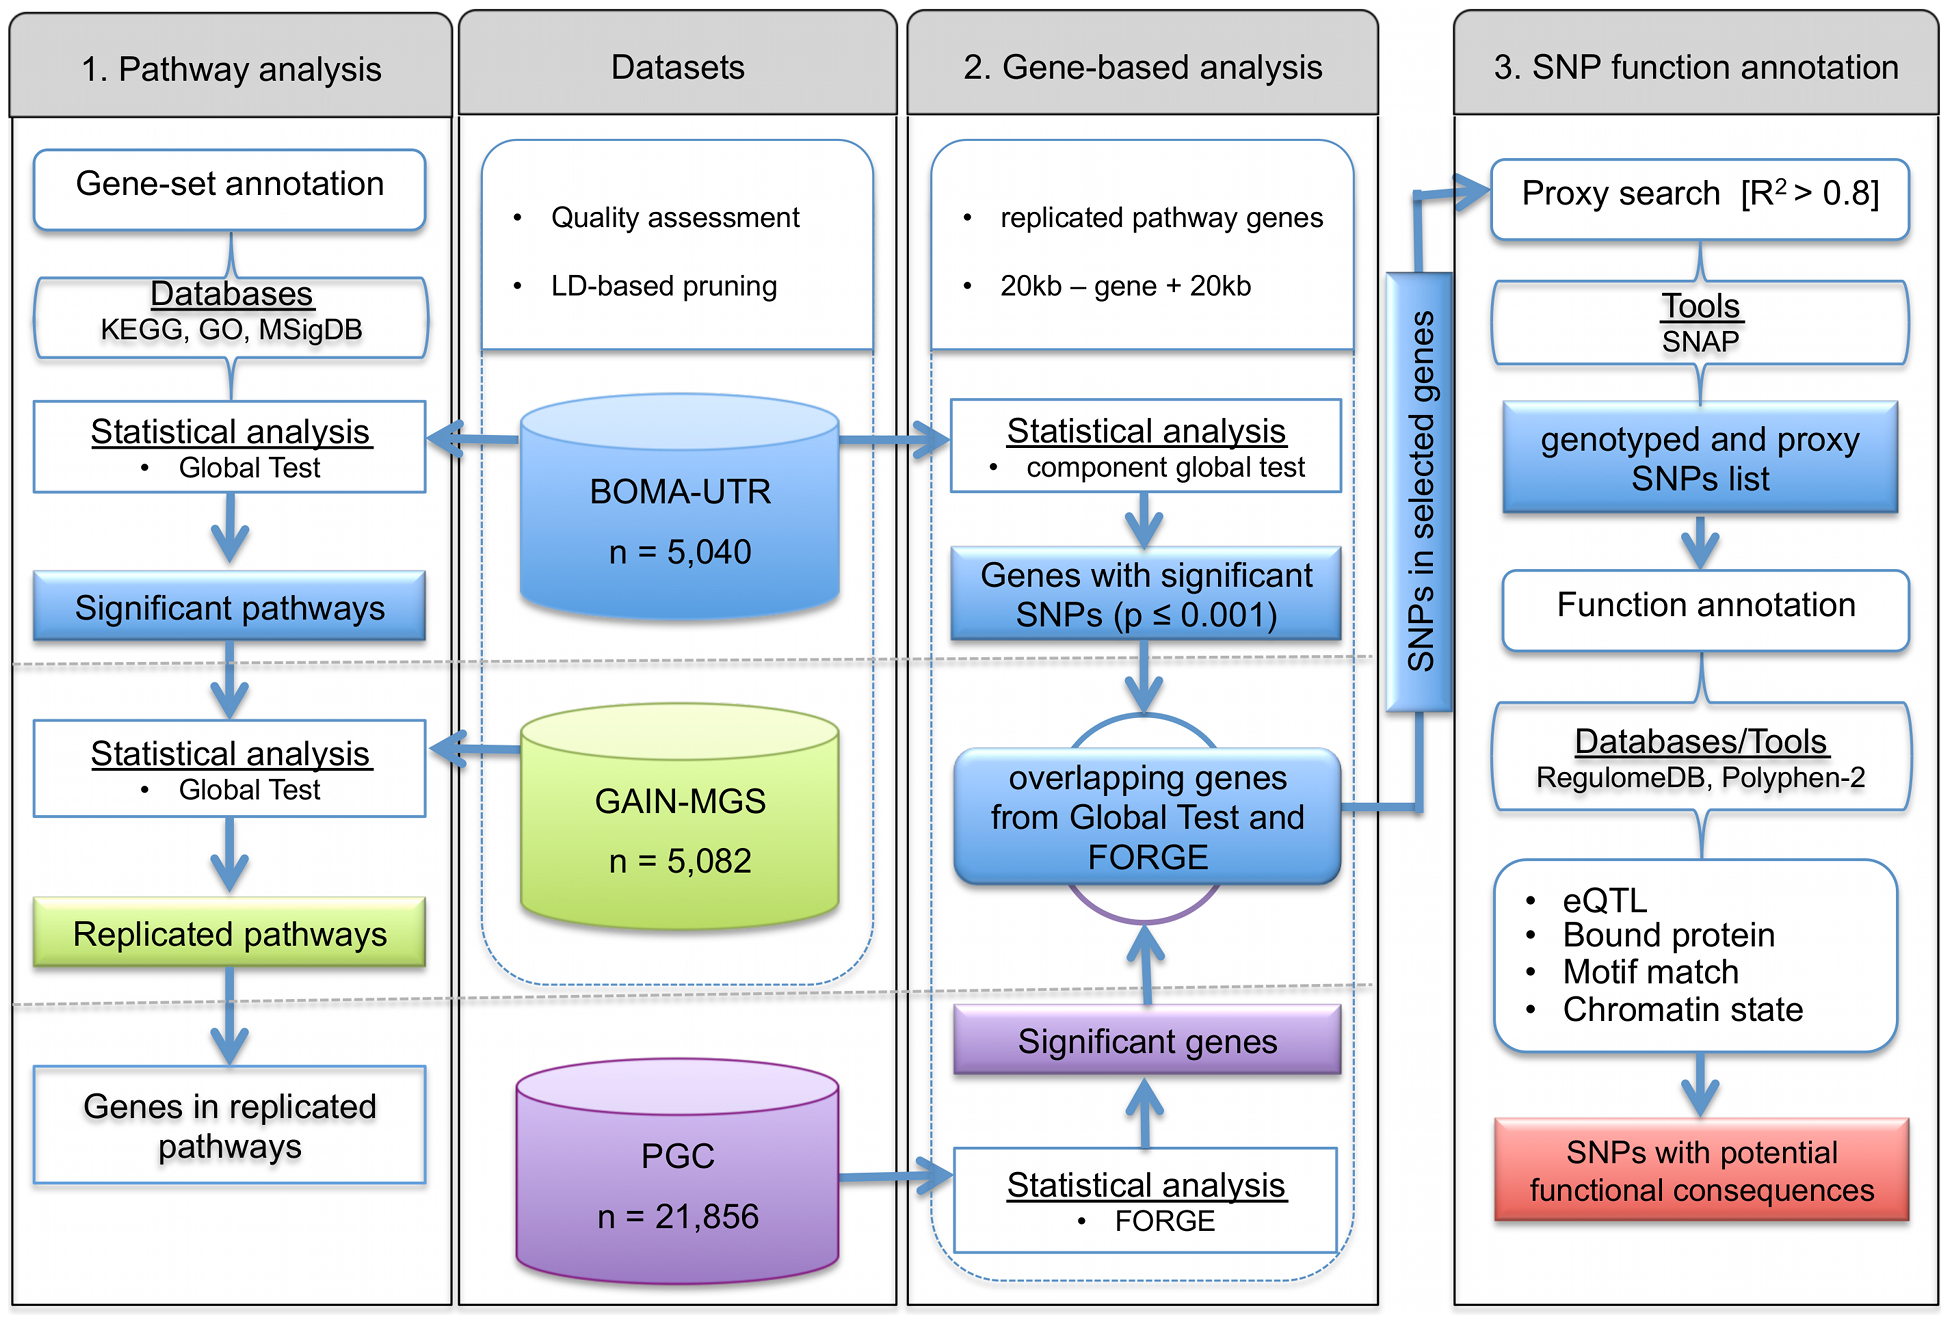 Flowchart for (1) detection and replication of schizophrenia associated pathways and (2) identification of the most informative genes, and (3) functional annotation of single nucleotide polymorphisms in the genes of interest.